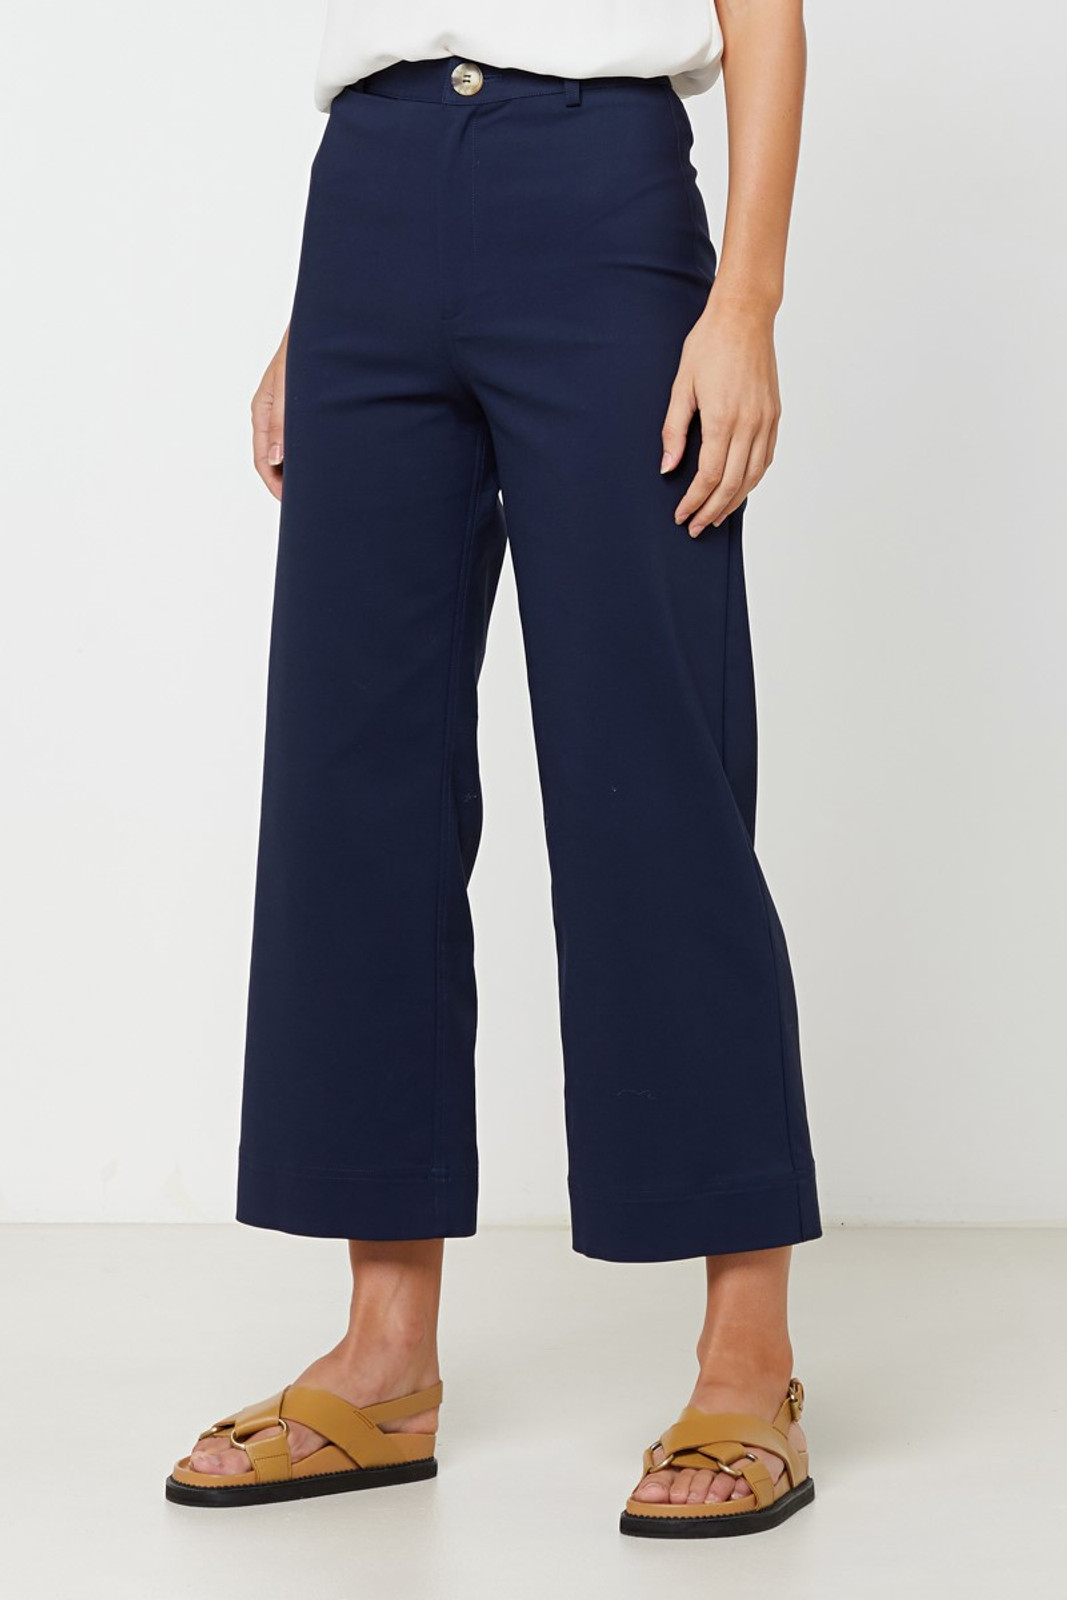 Elka Collective Ingrid Pant Navy  1